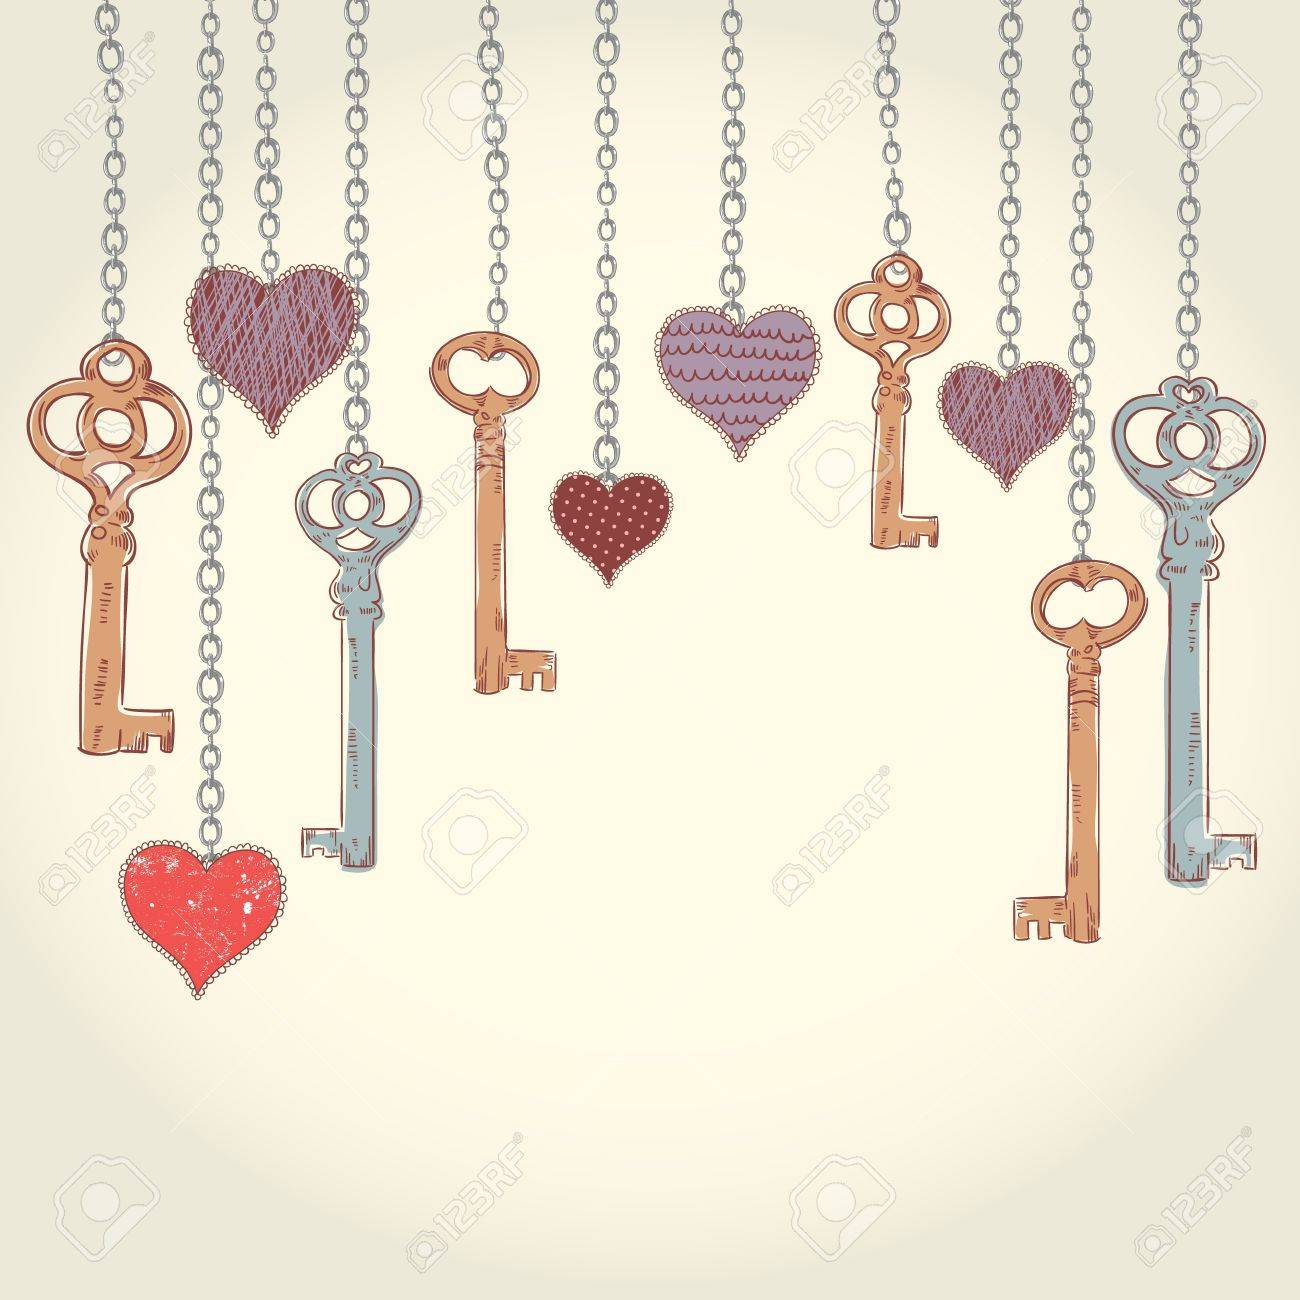 Romantic valentine invitation card with keys and hearts hanging romantic valentine invitation card with keys and hearts hanging on chains and empty place for text stopboris Gallery